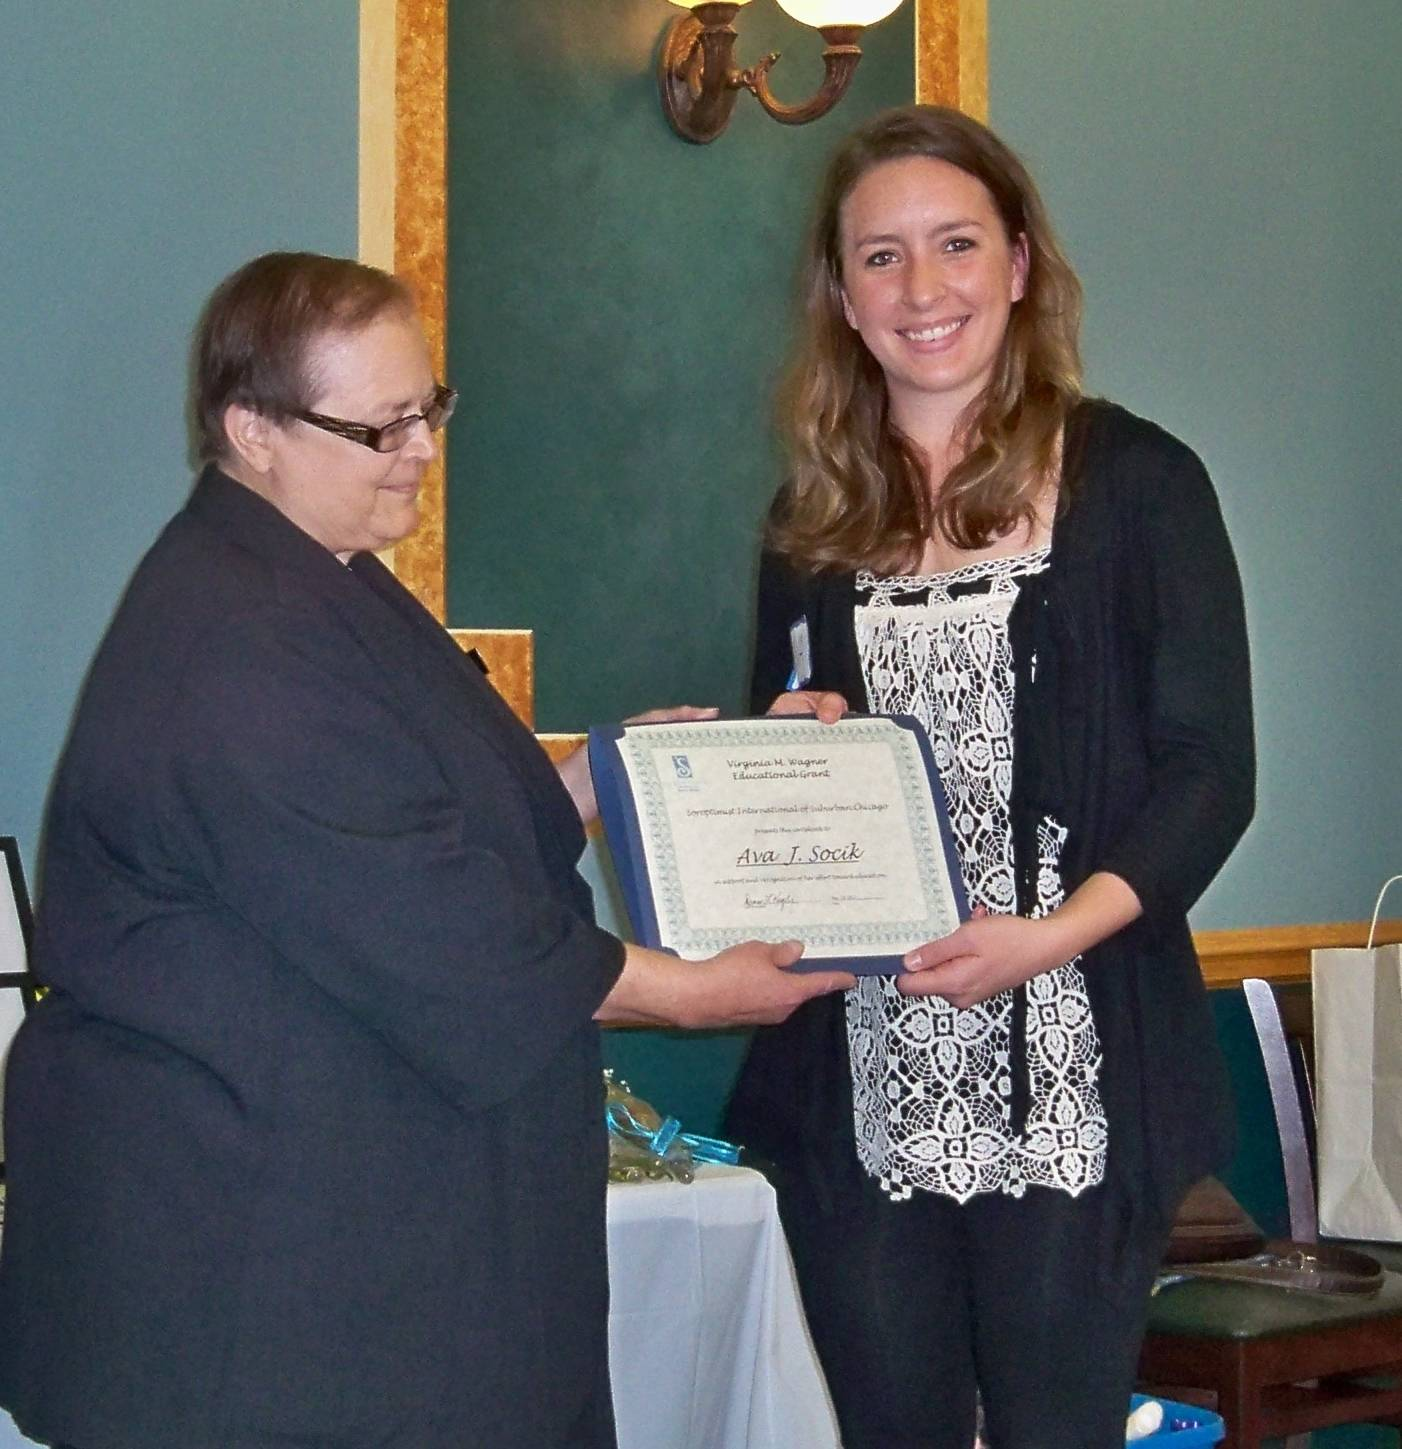 Ava Socik of Niles receives the Virginia M. Wagner Educational Grant from local Club President, Diane Kegley